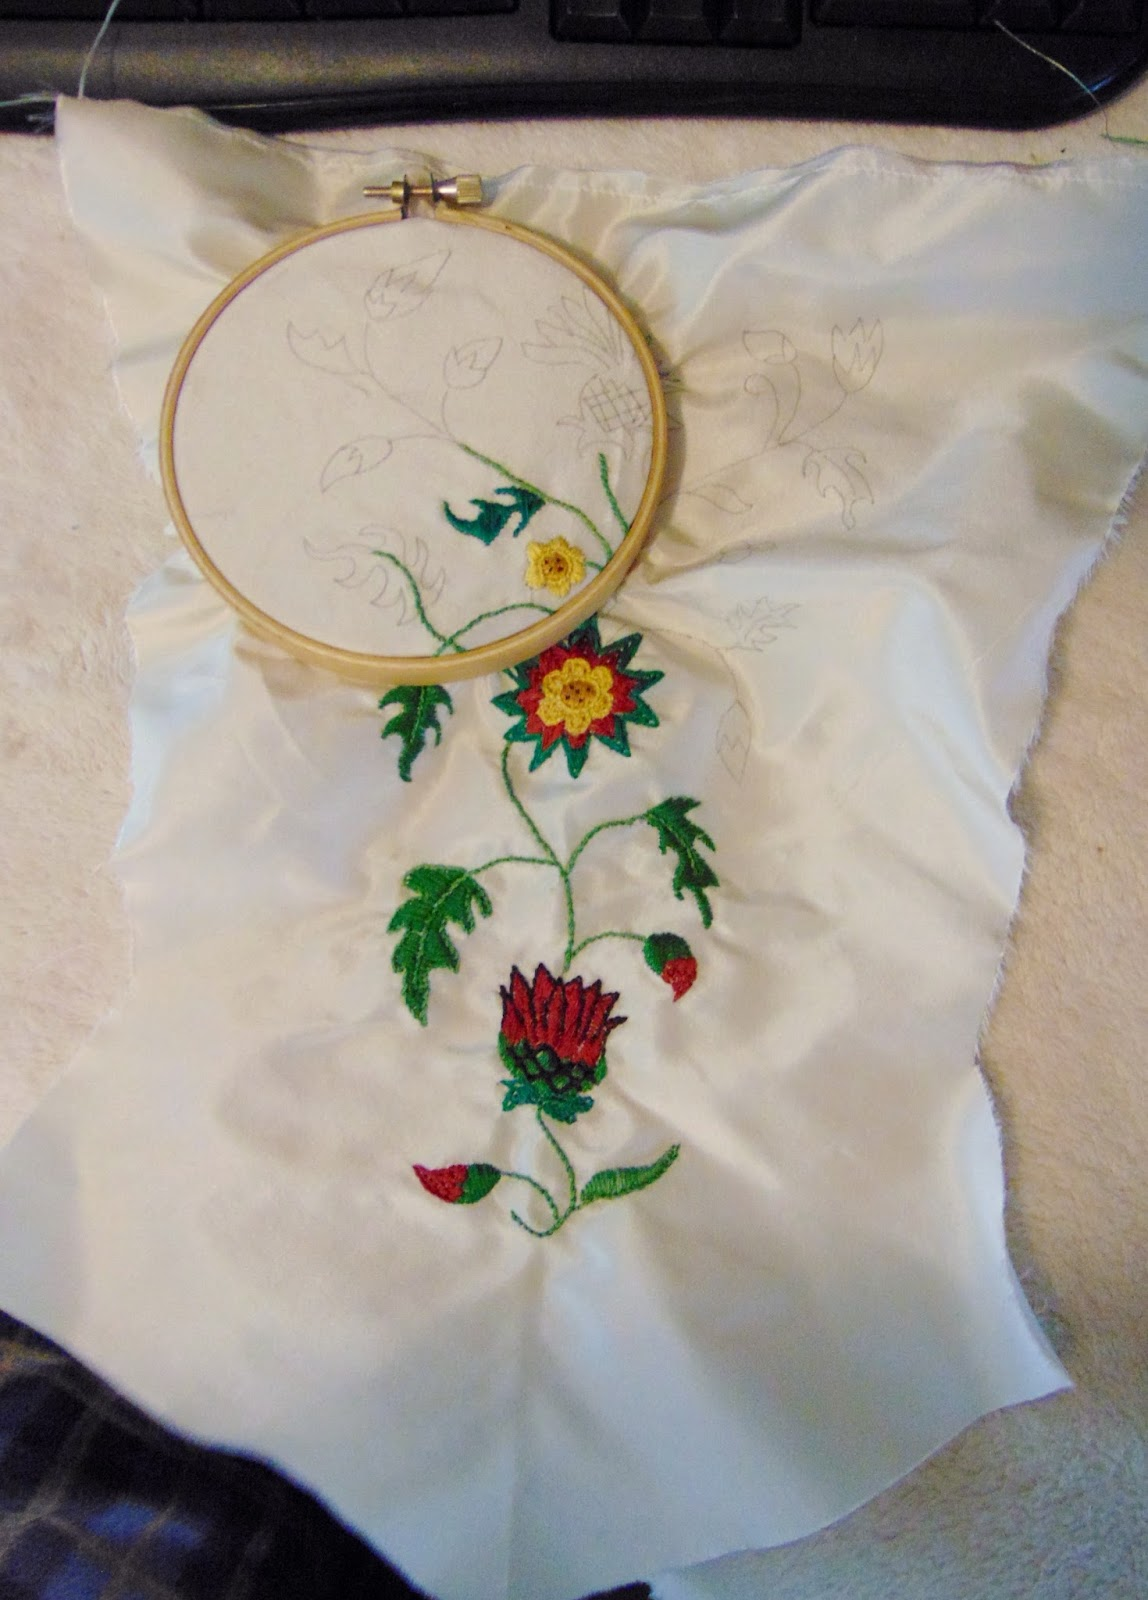 The antique sewist pet en lair silk taffeta with embroidered below luckily i was using a rather small embroidery hoop and had no trouble fitting the design without the hoop going over the edges of the fabric ccuart Choice Image